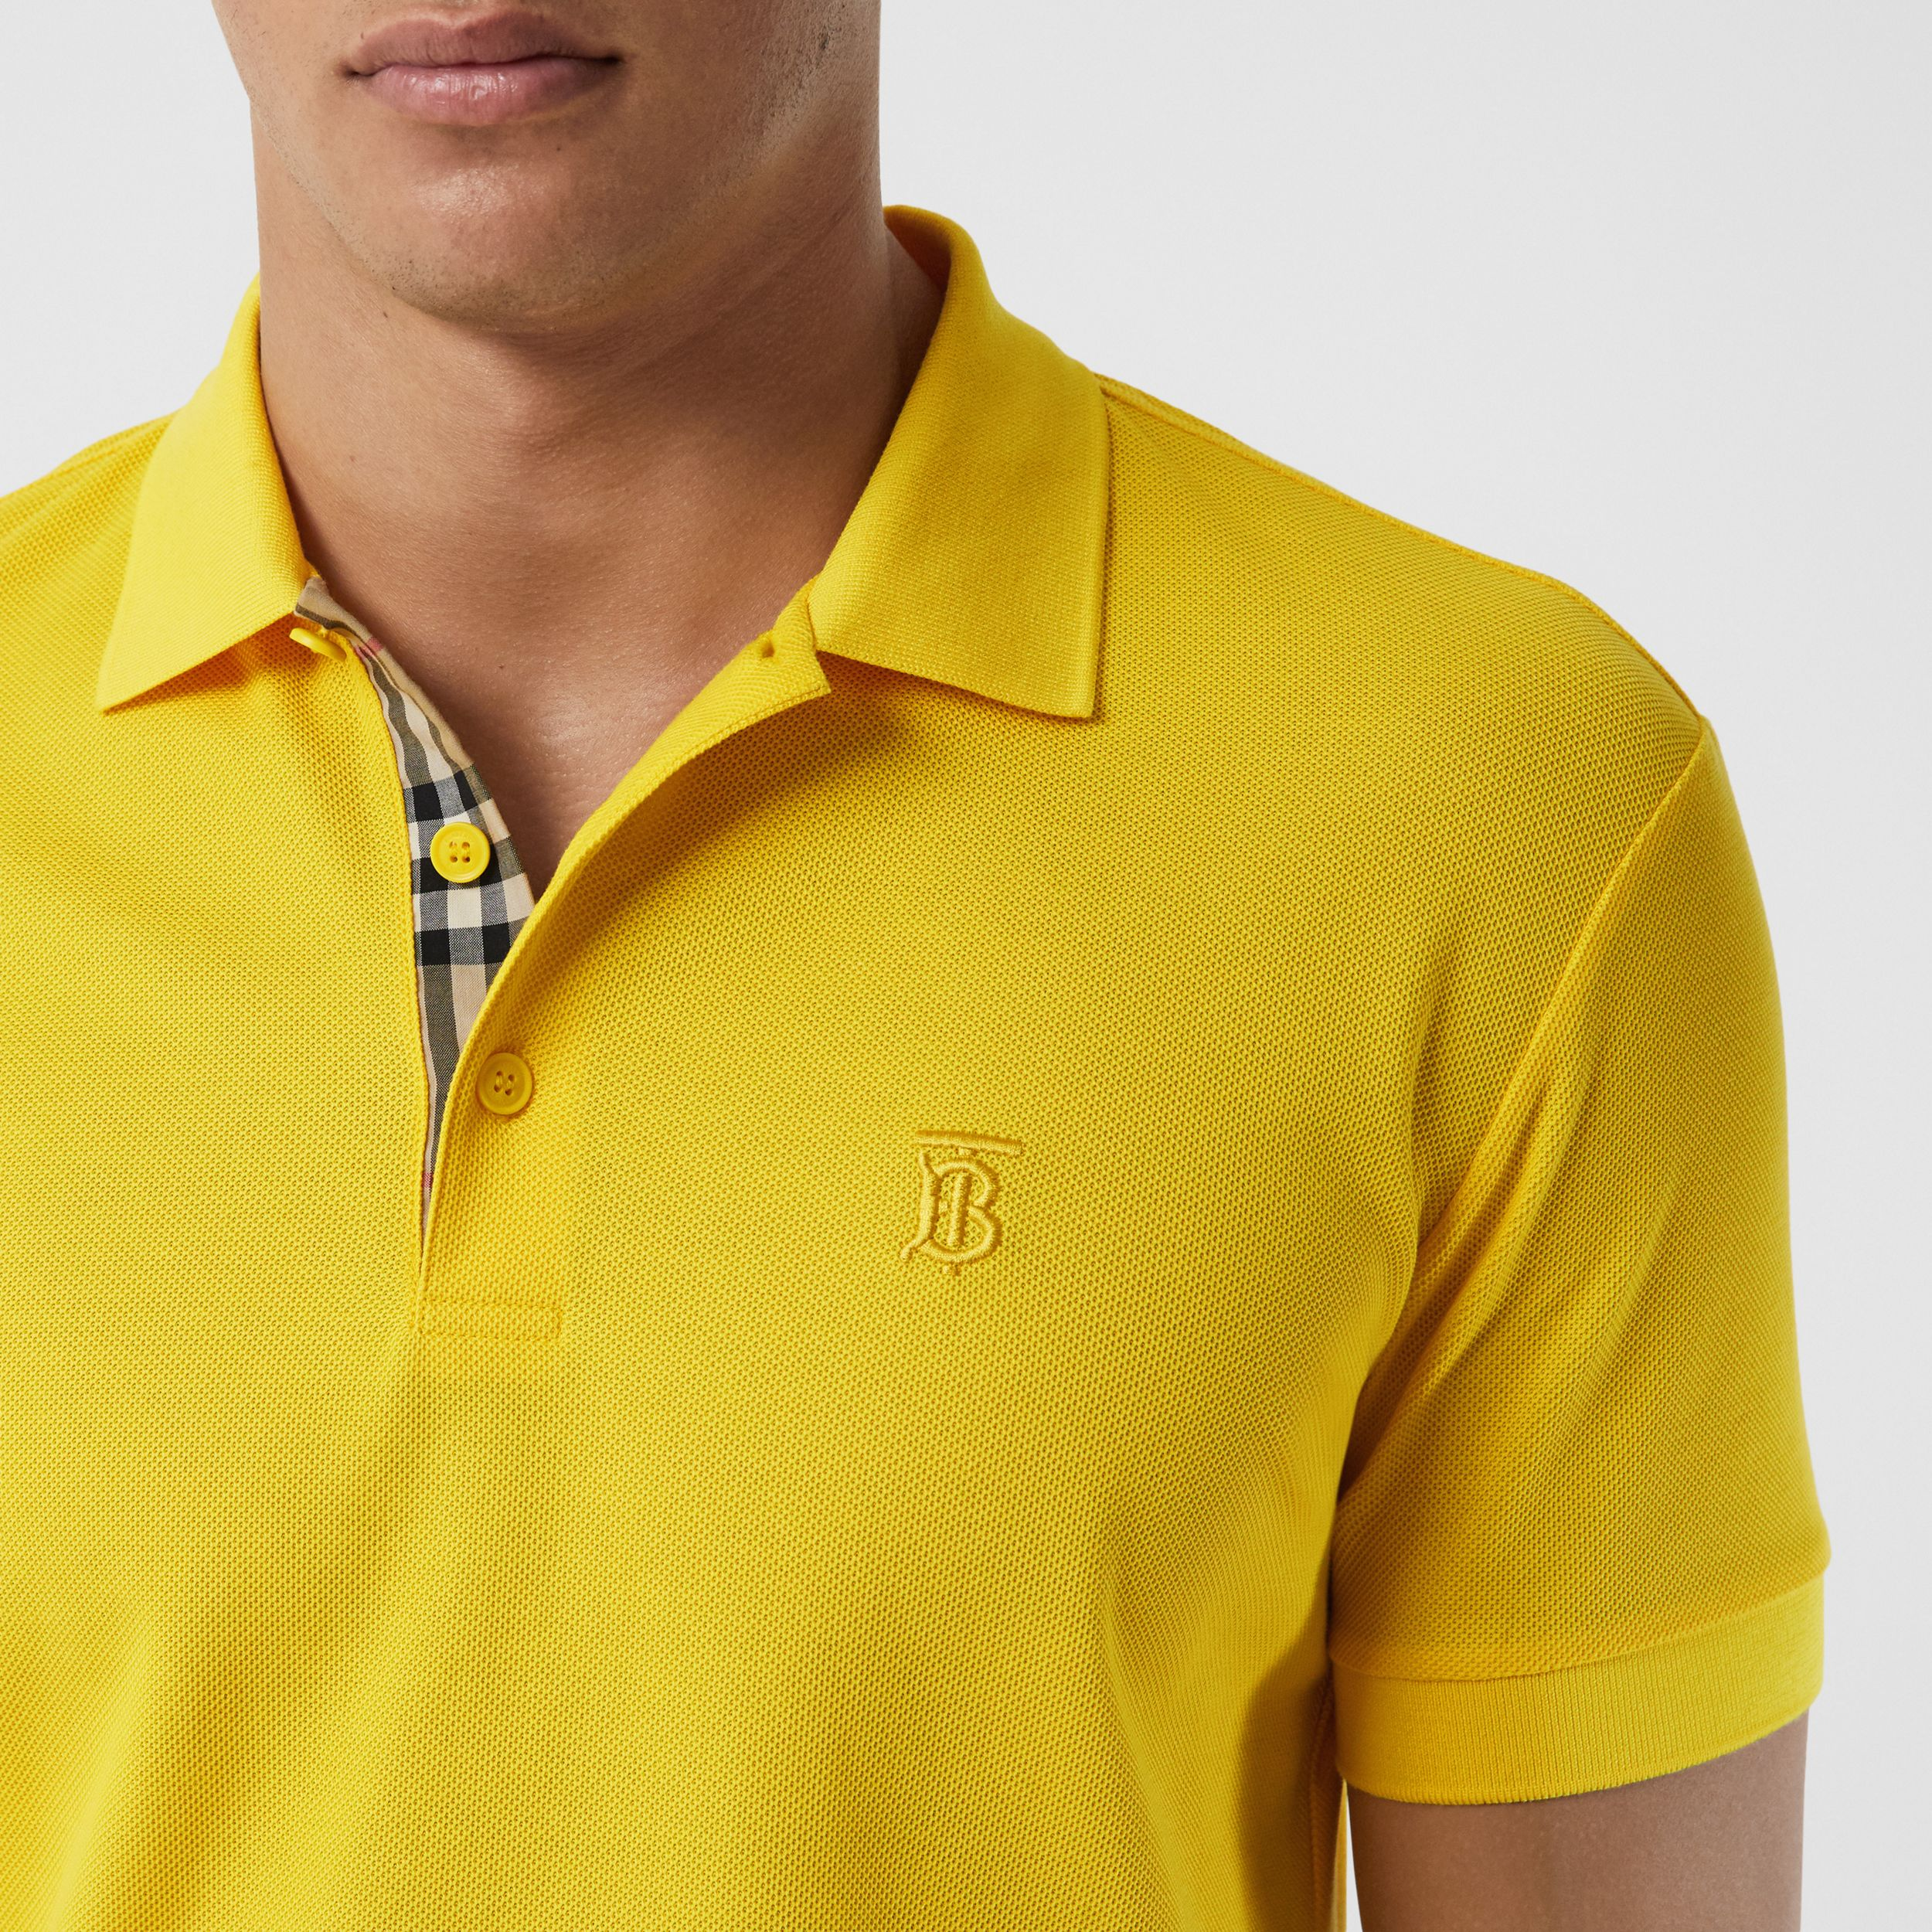 Monogram Motif Cotton Piqué Polo Shirt in Canary Yellow - Men | Burberry - 2